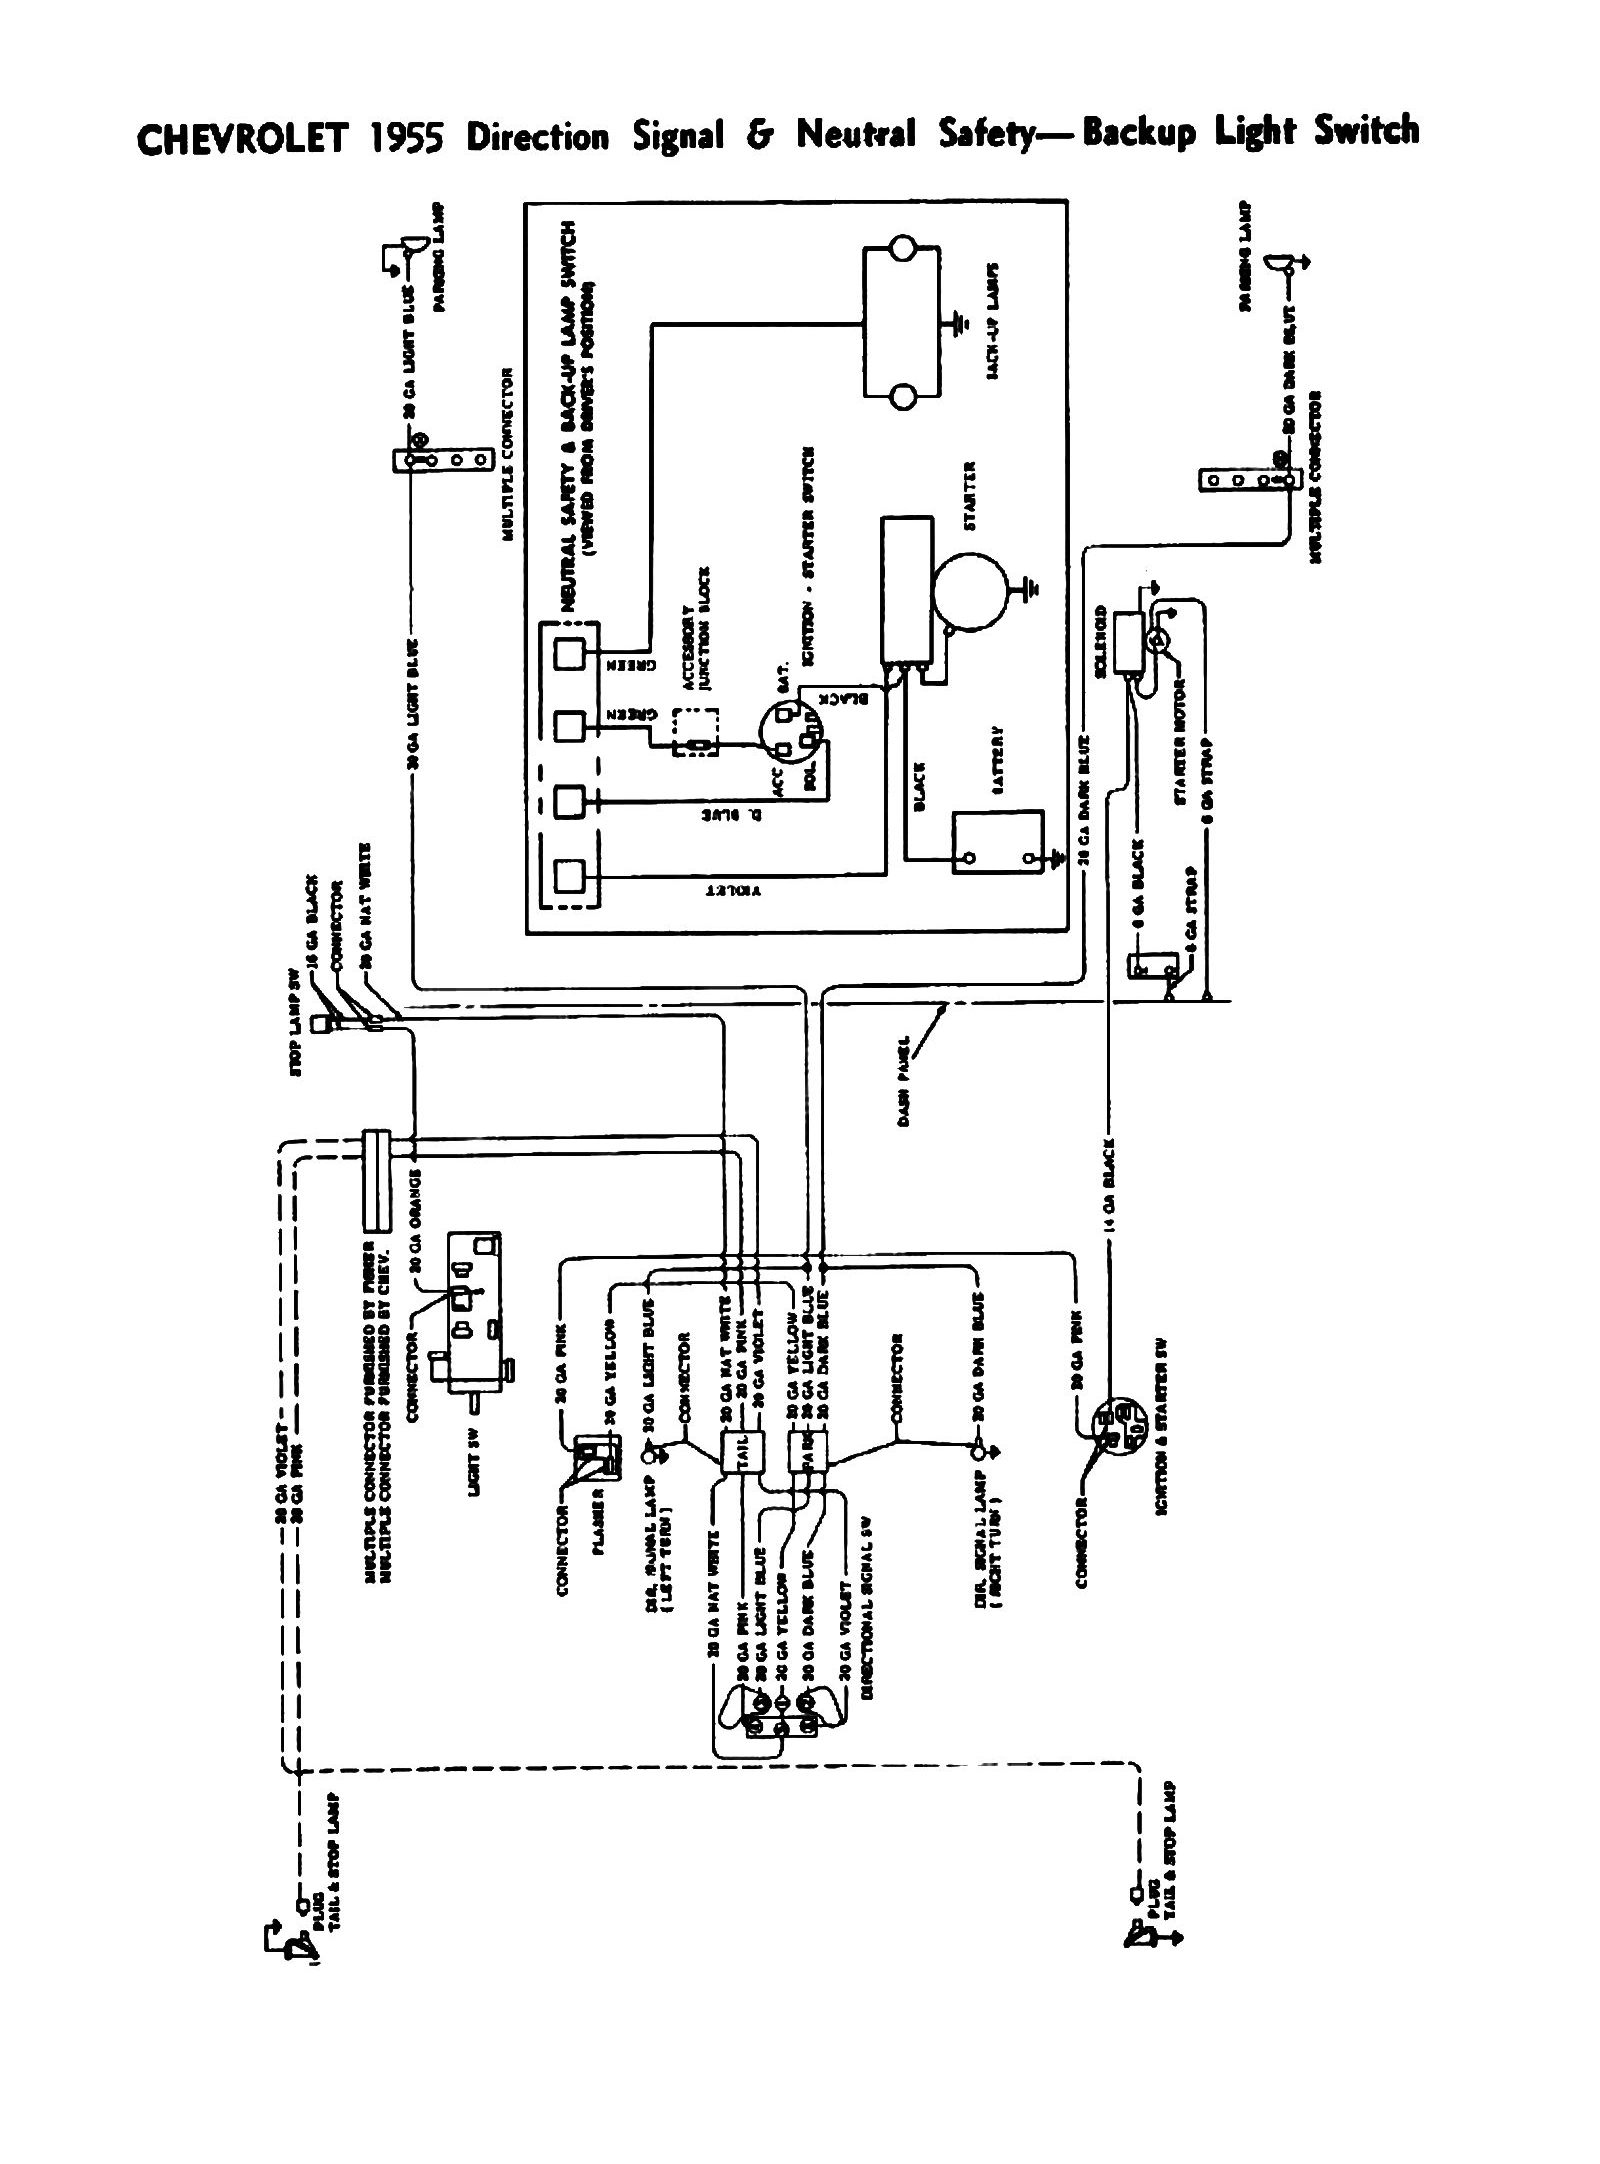 55signal wiring diagram 55 chevy truck readingrat net 1956 Bel Air Wiring Diagram at soozxer.org